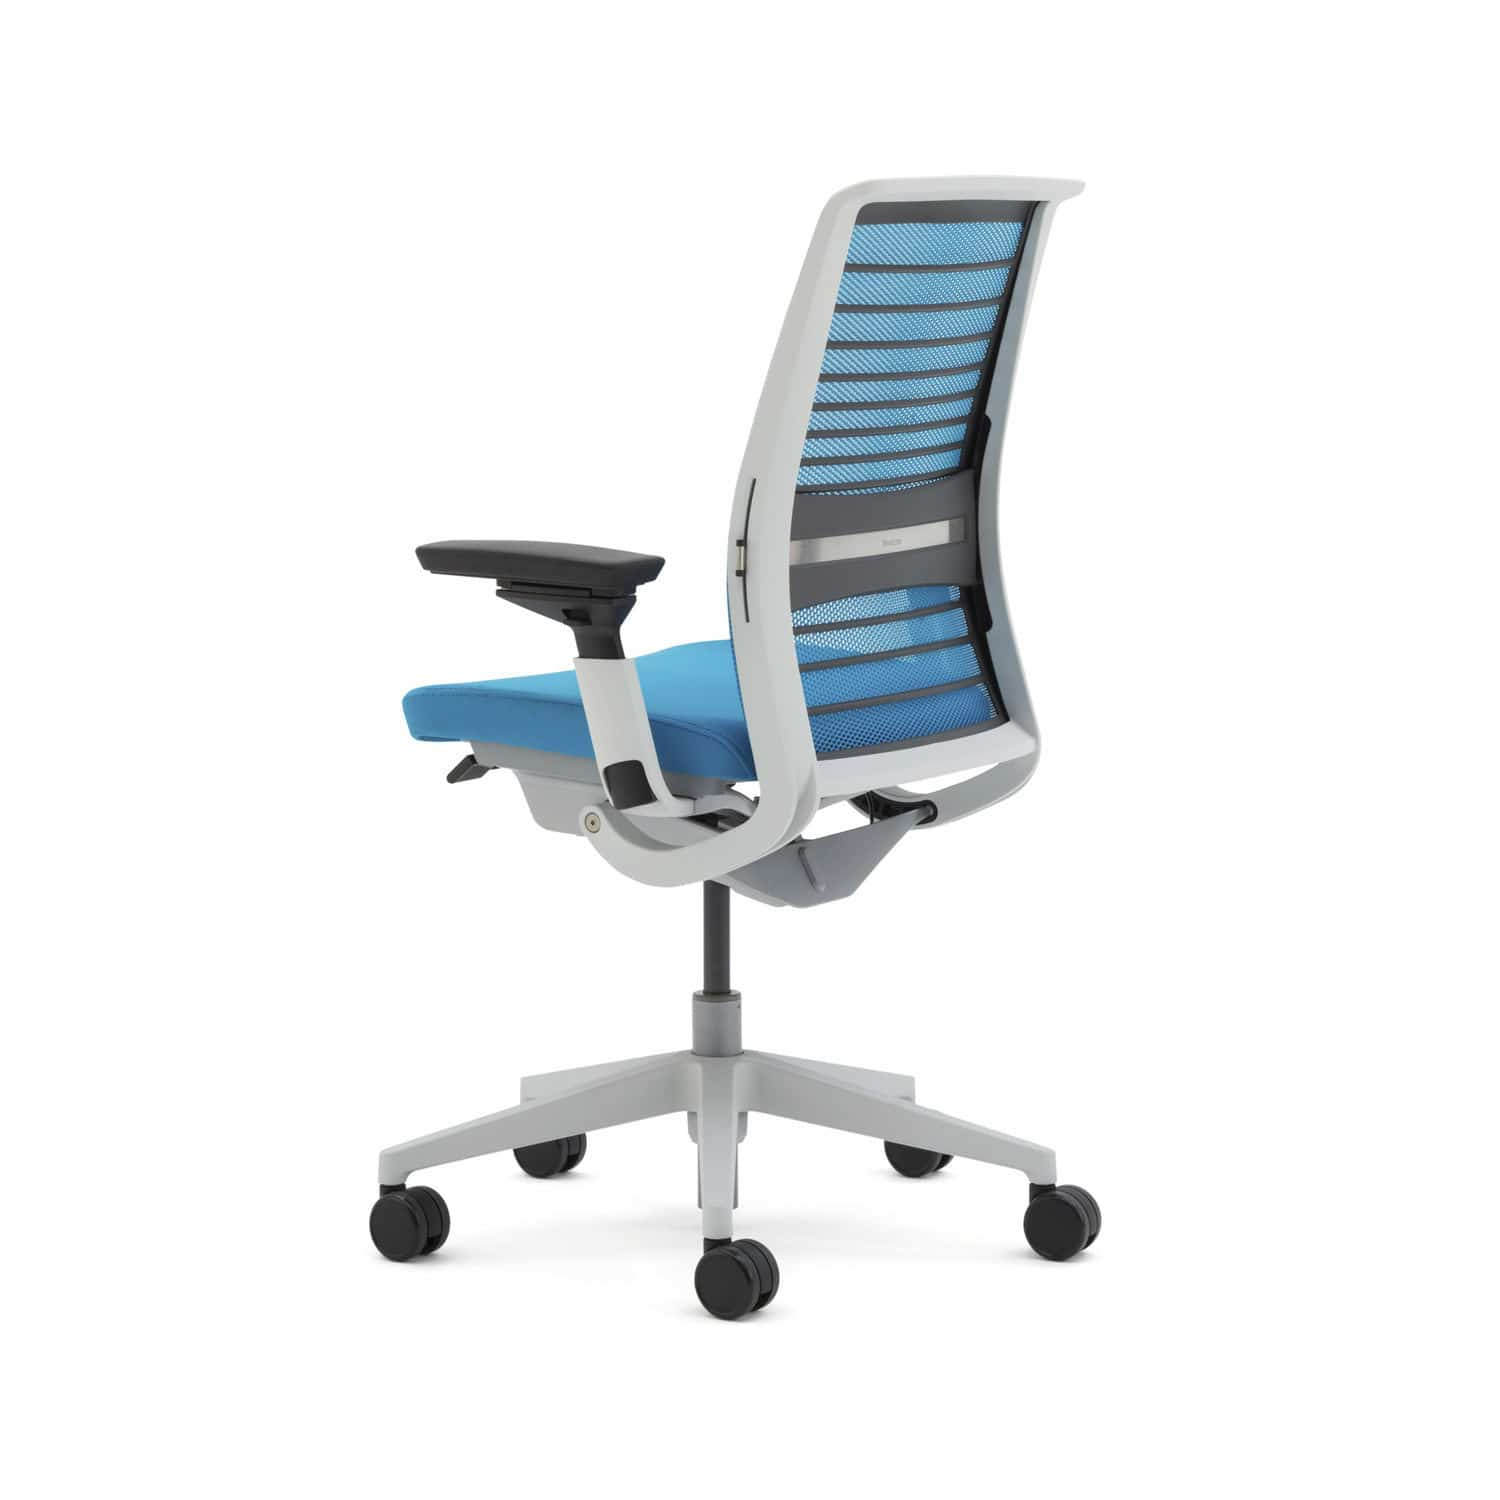 Steelcase Think Chair Office Chair With Armrests On Casters Think Nurture Steelcase